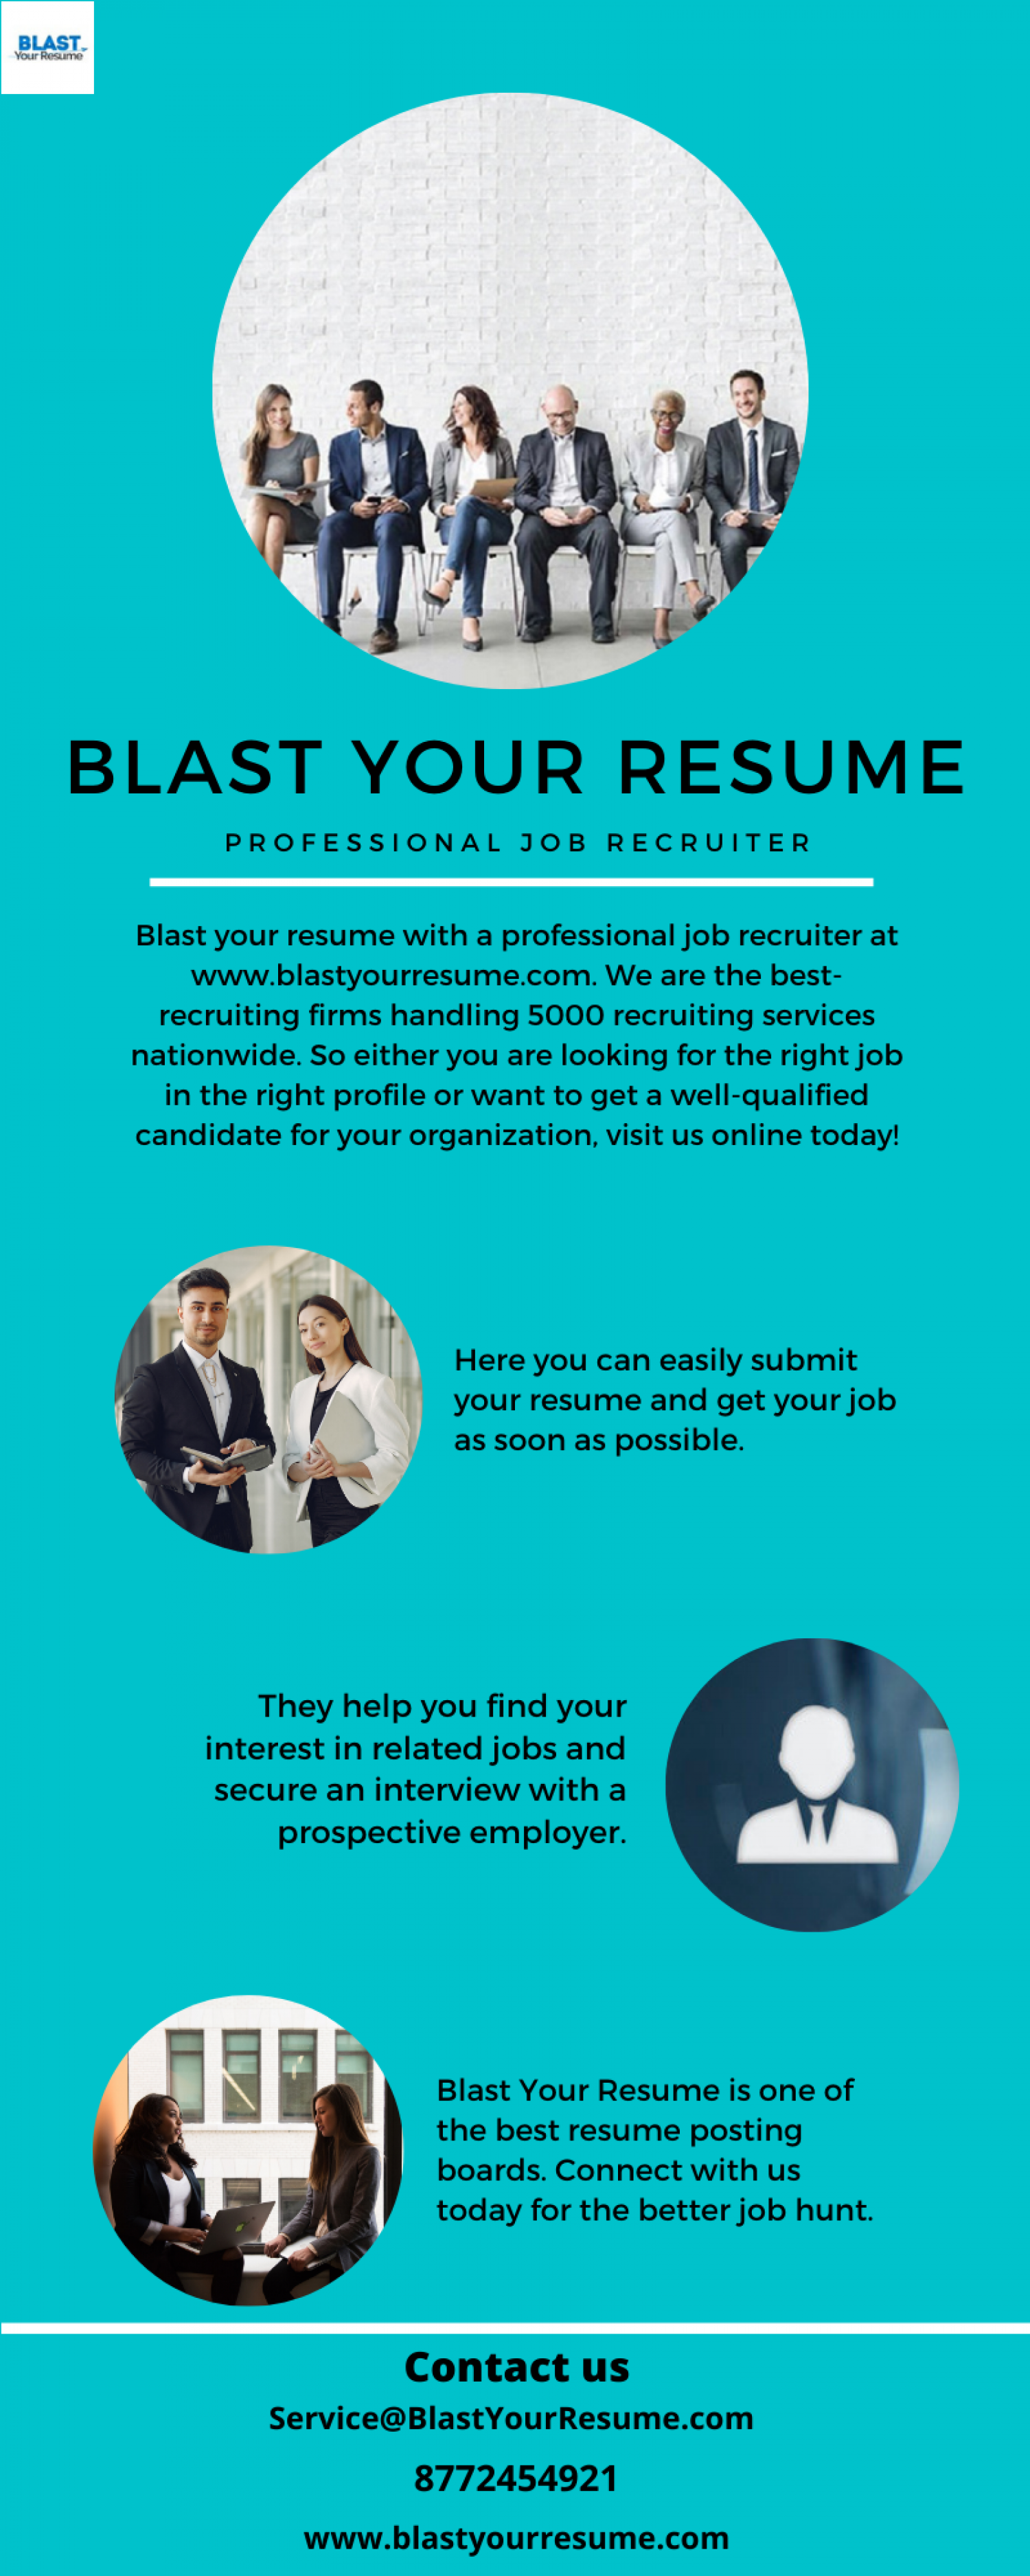 Get the Professional job Recruiter Service   BLAST Your Resume Infographic